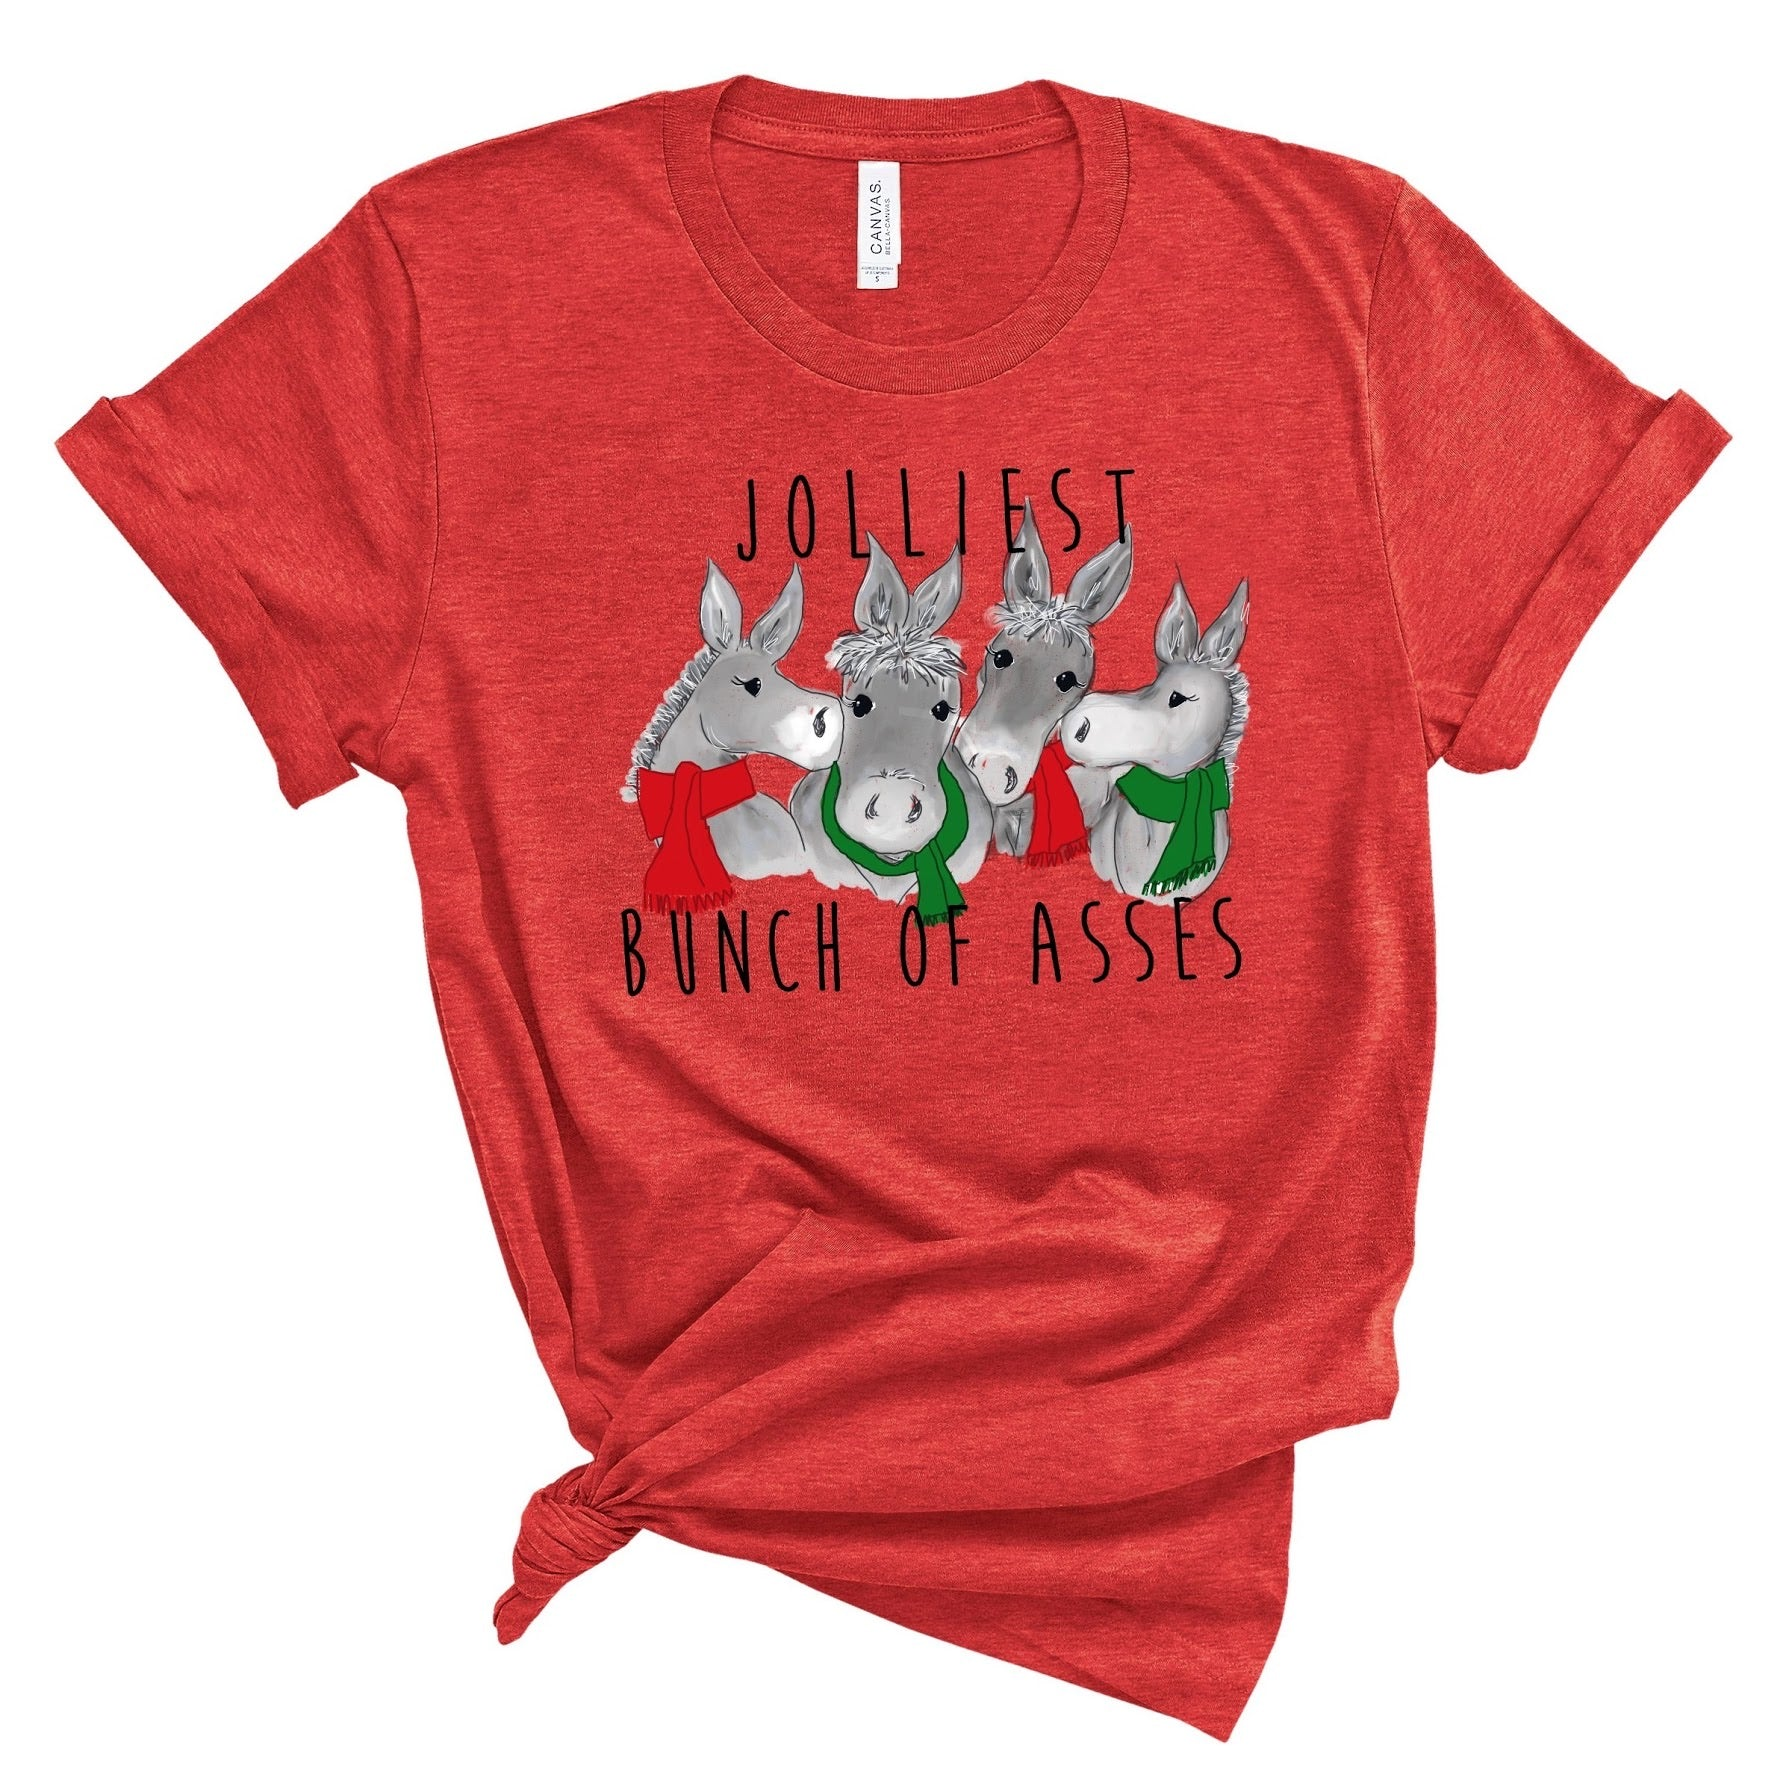 Jolliest Bunch Of Asses ~ Heather Red ~ Adult T-Shirt-Shop-Wholesale-Womens-Boutique-Custom-Graphic-Tees-Branding-Gifts